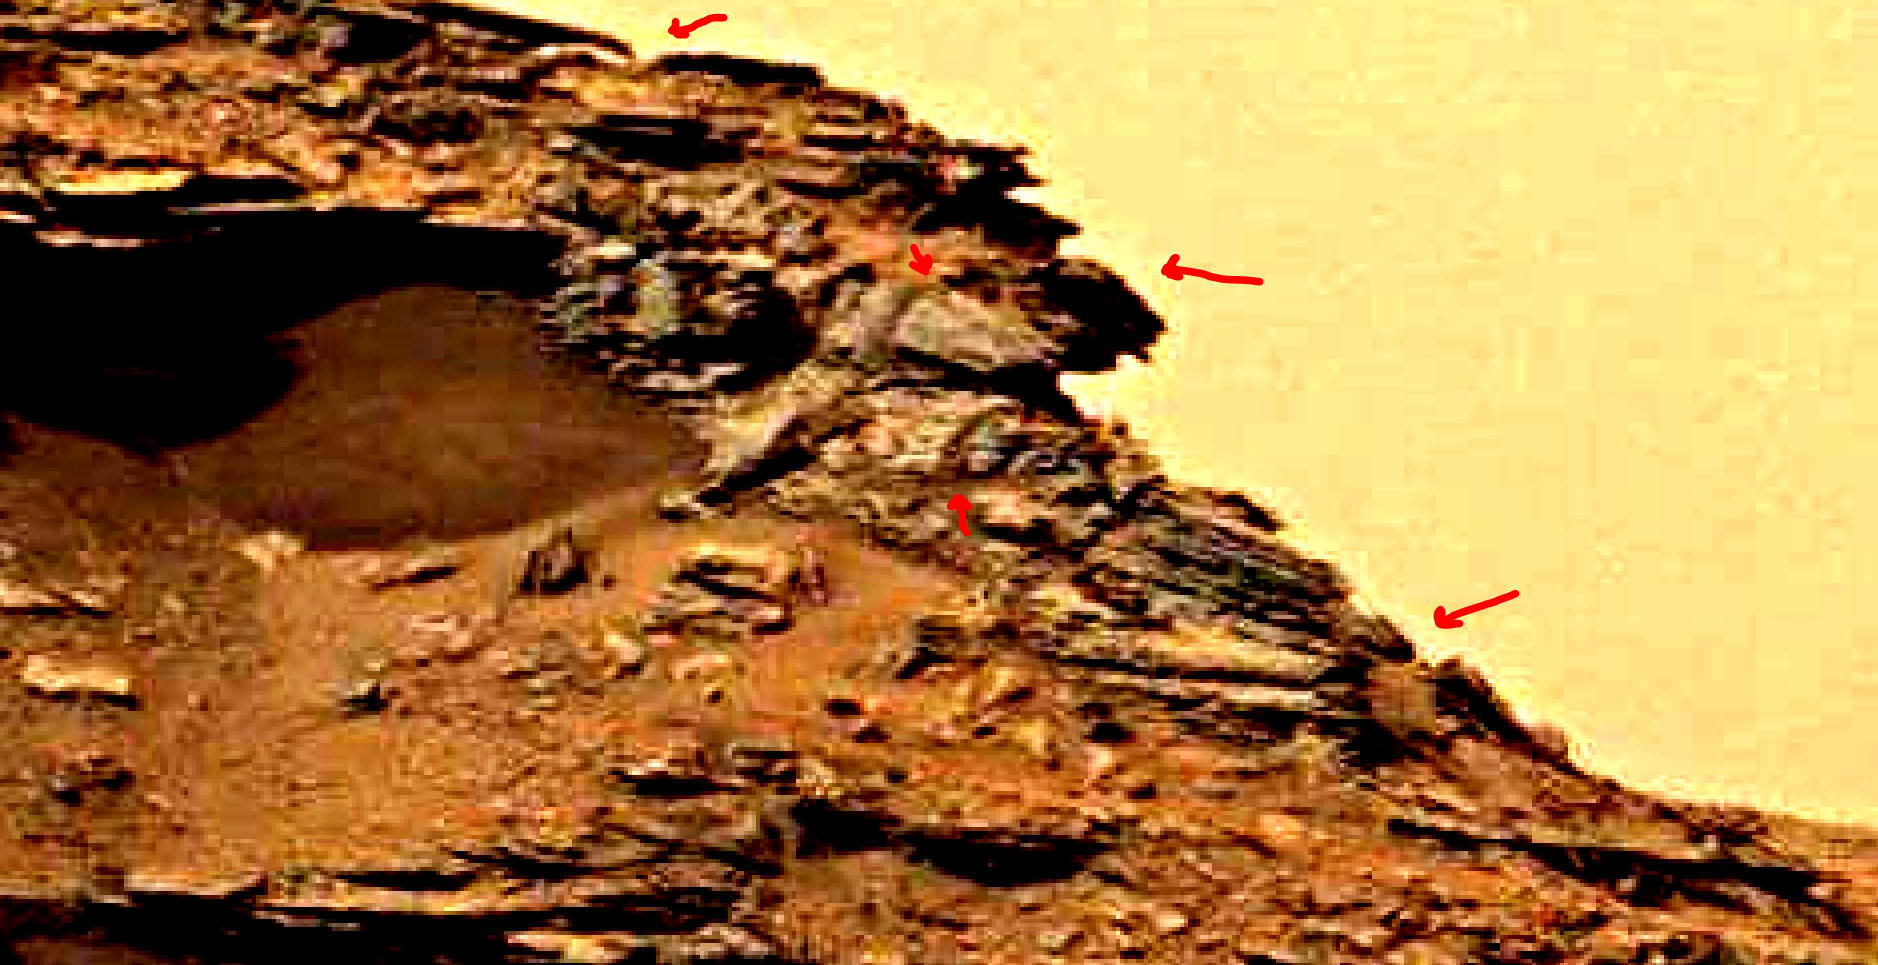 mars-sol-1463-anomaly-artifacts-25-was-life-on-mars